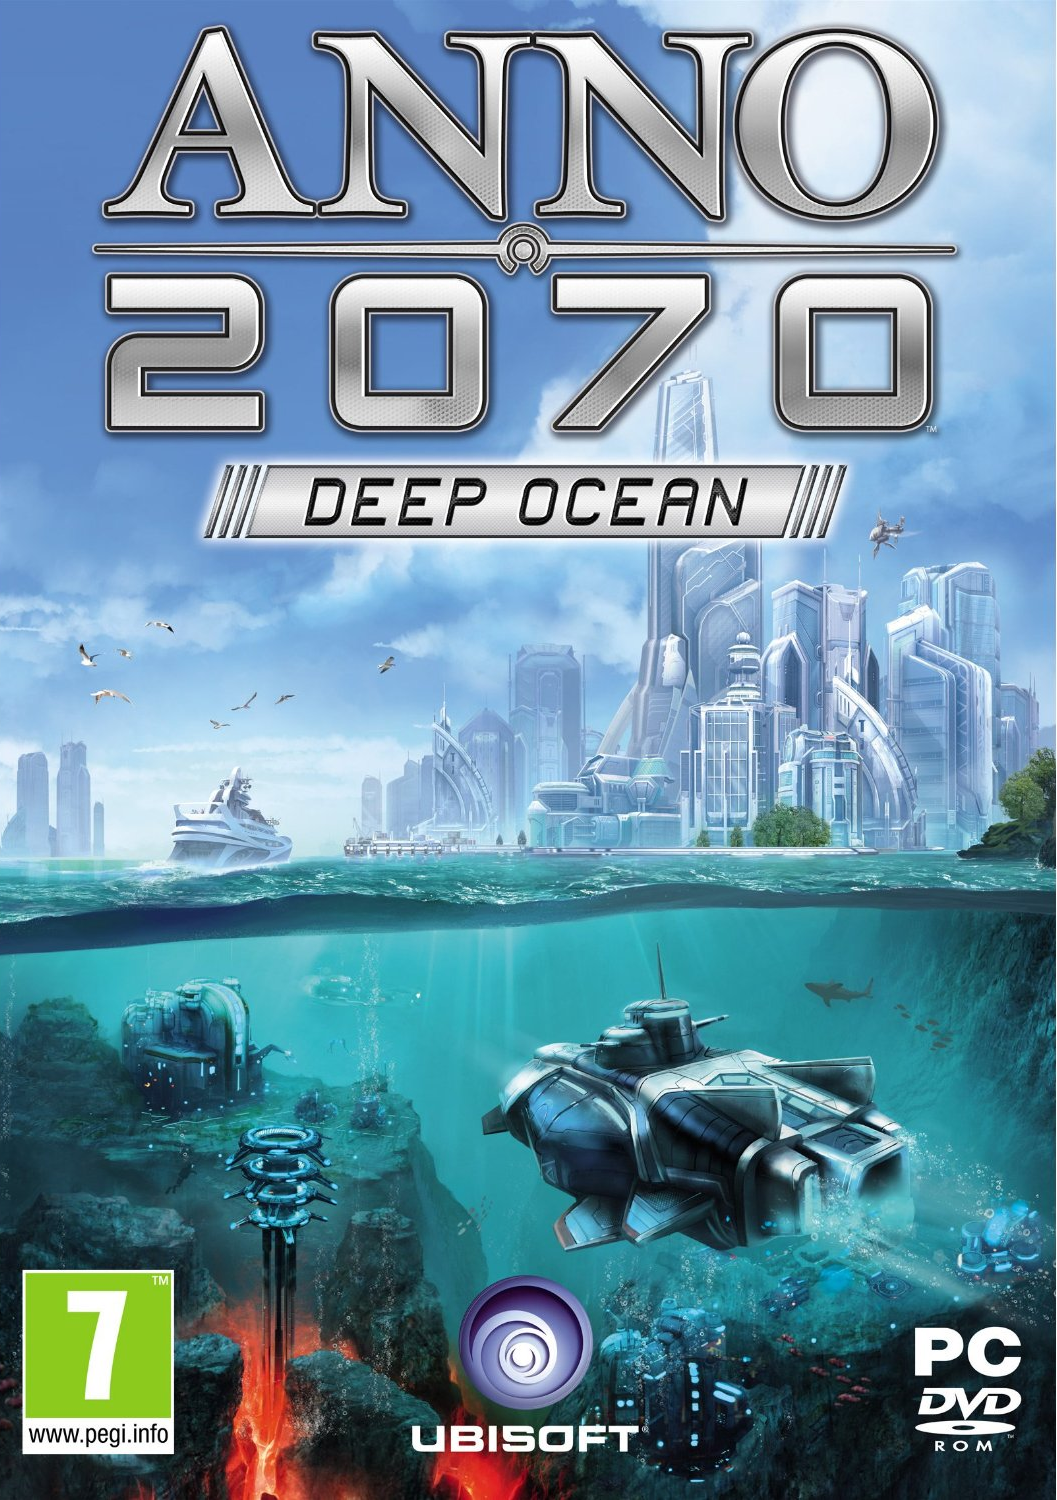 A Game For Free : Anno deep ocean pc game download for free